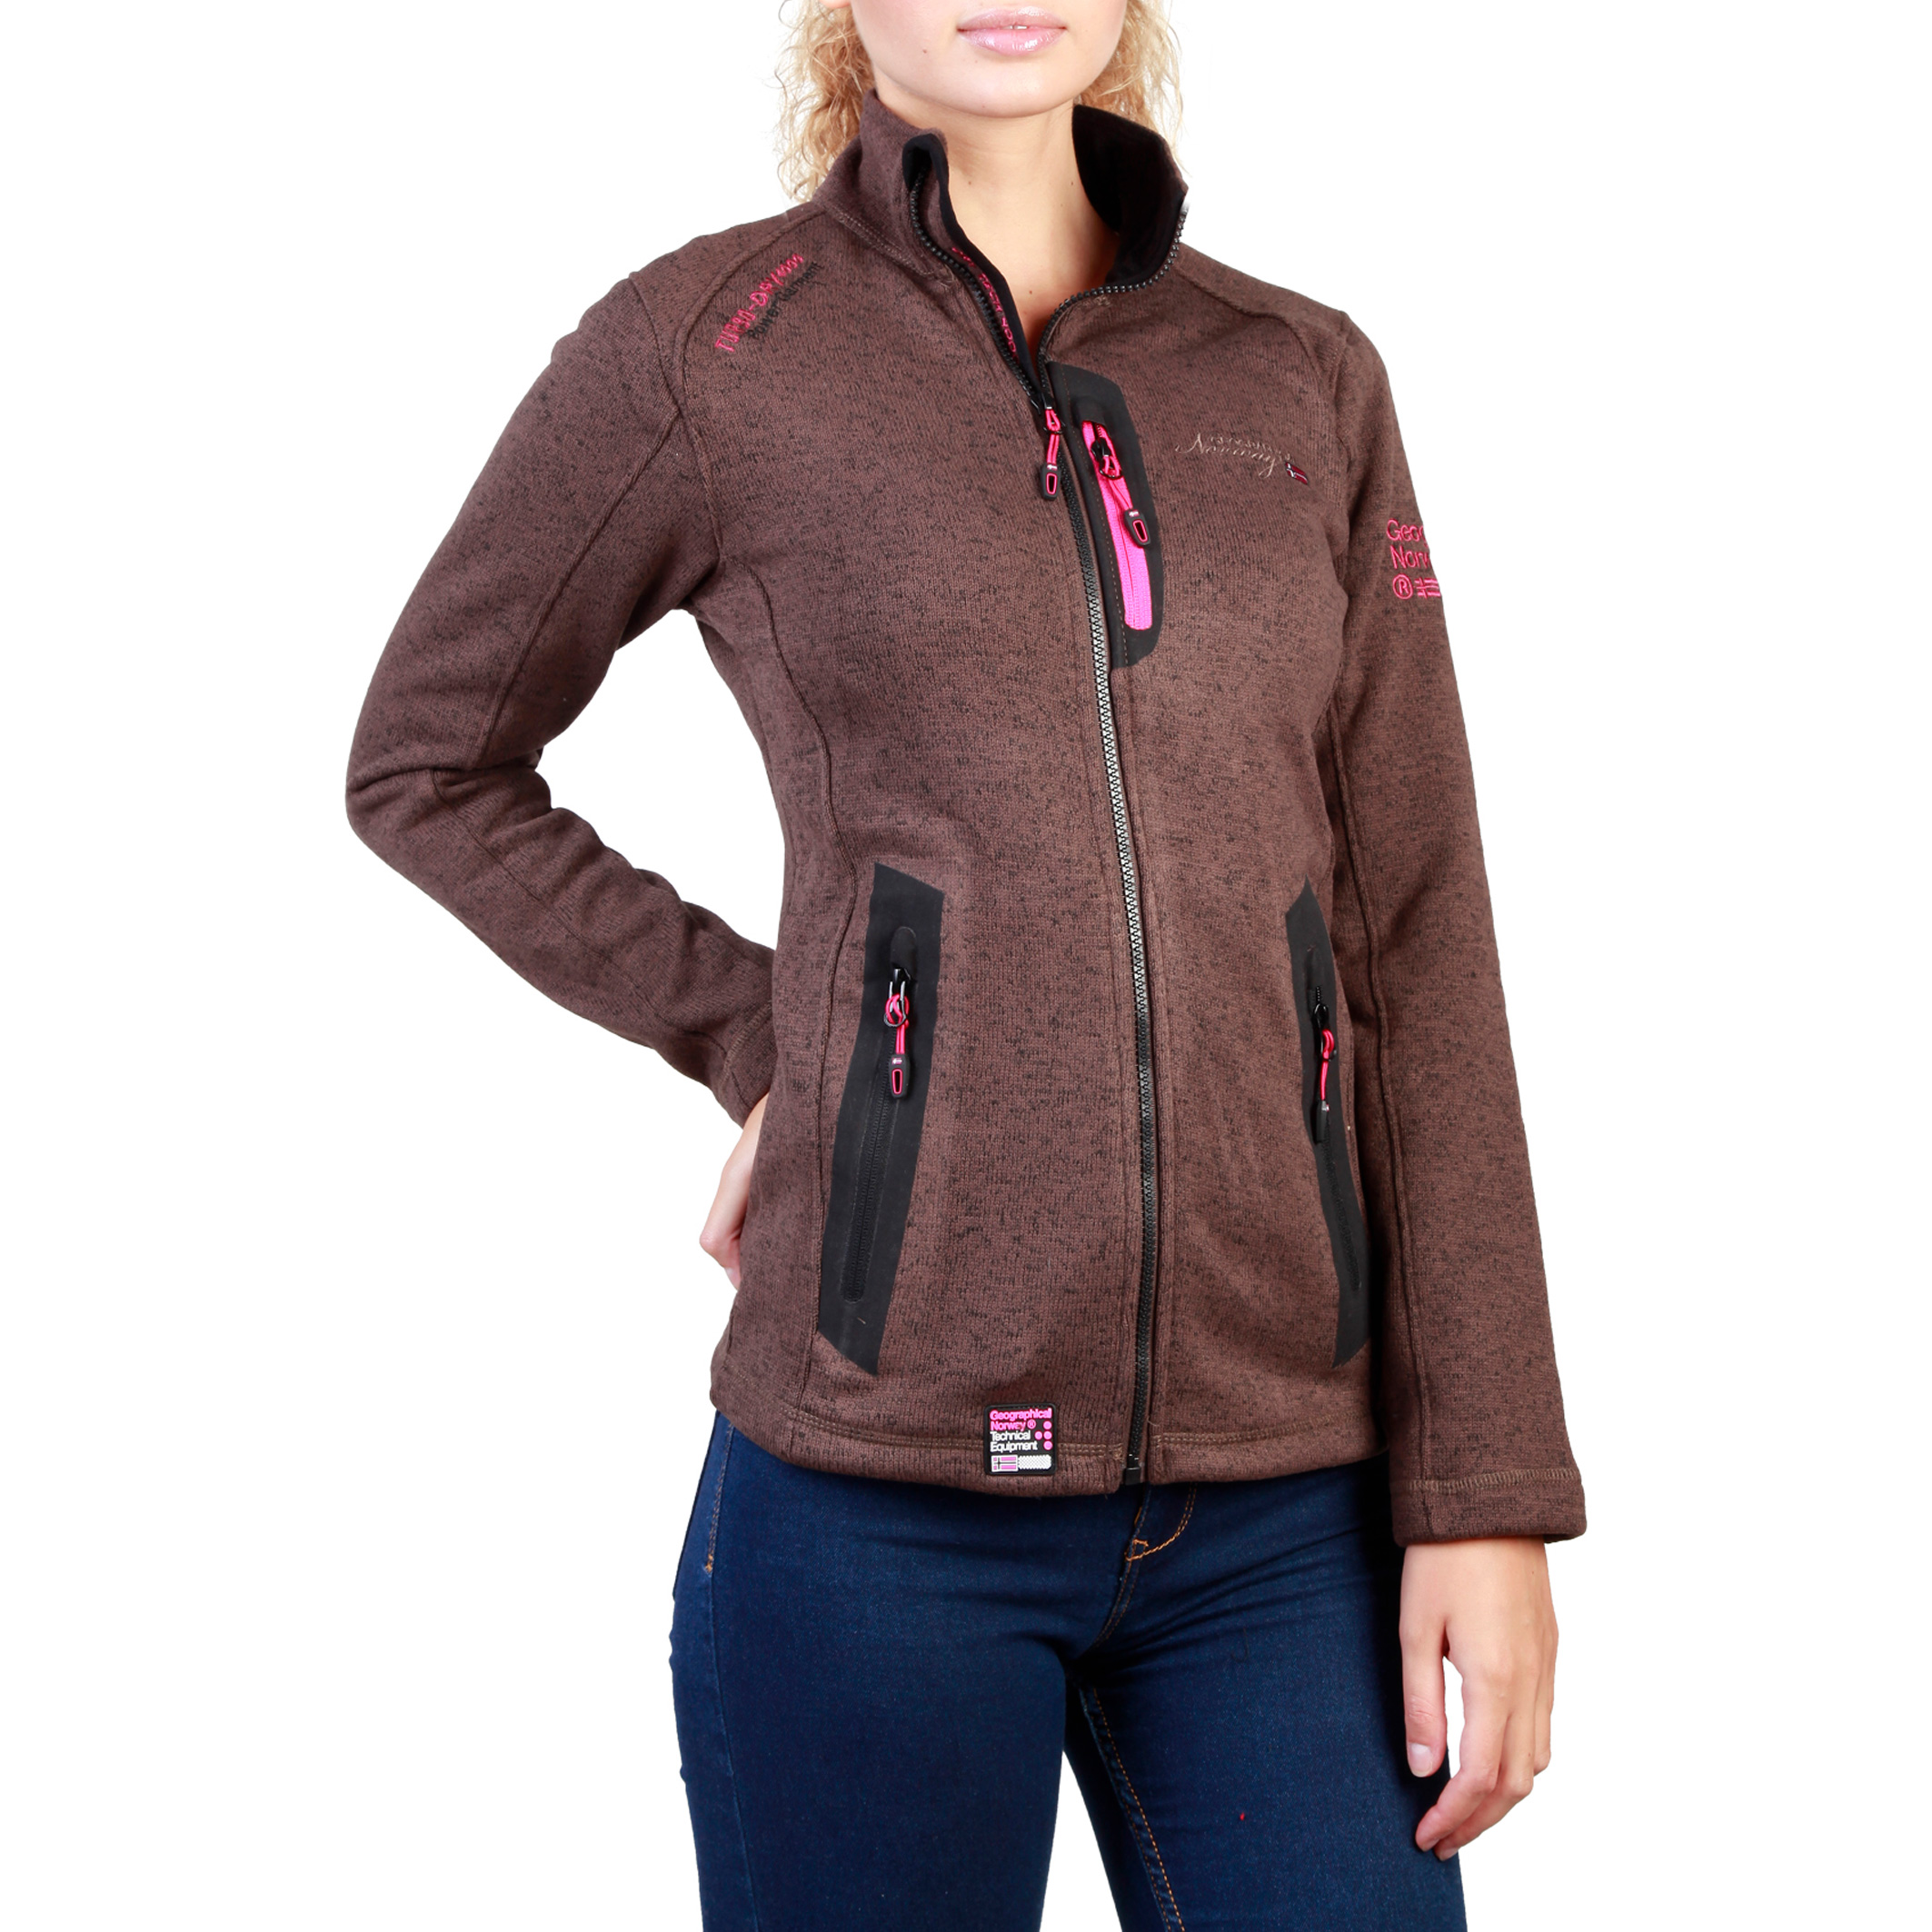 Vestes & blousons  Geographical norway Tazzera_woman brown